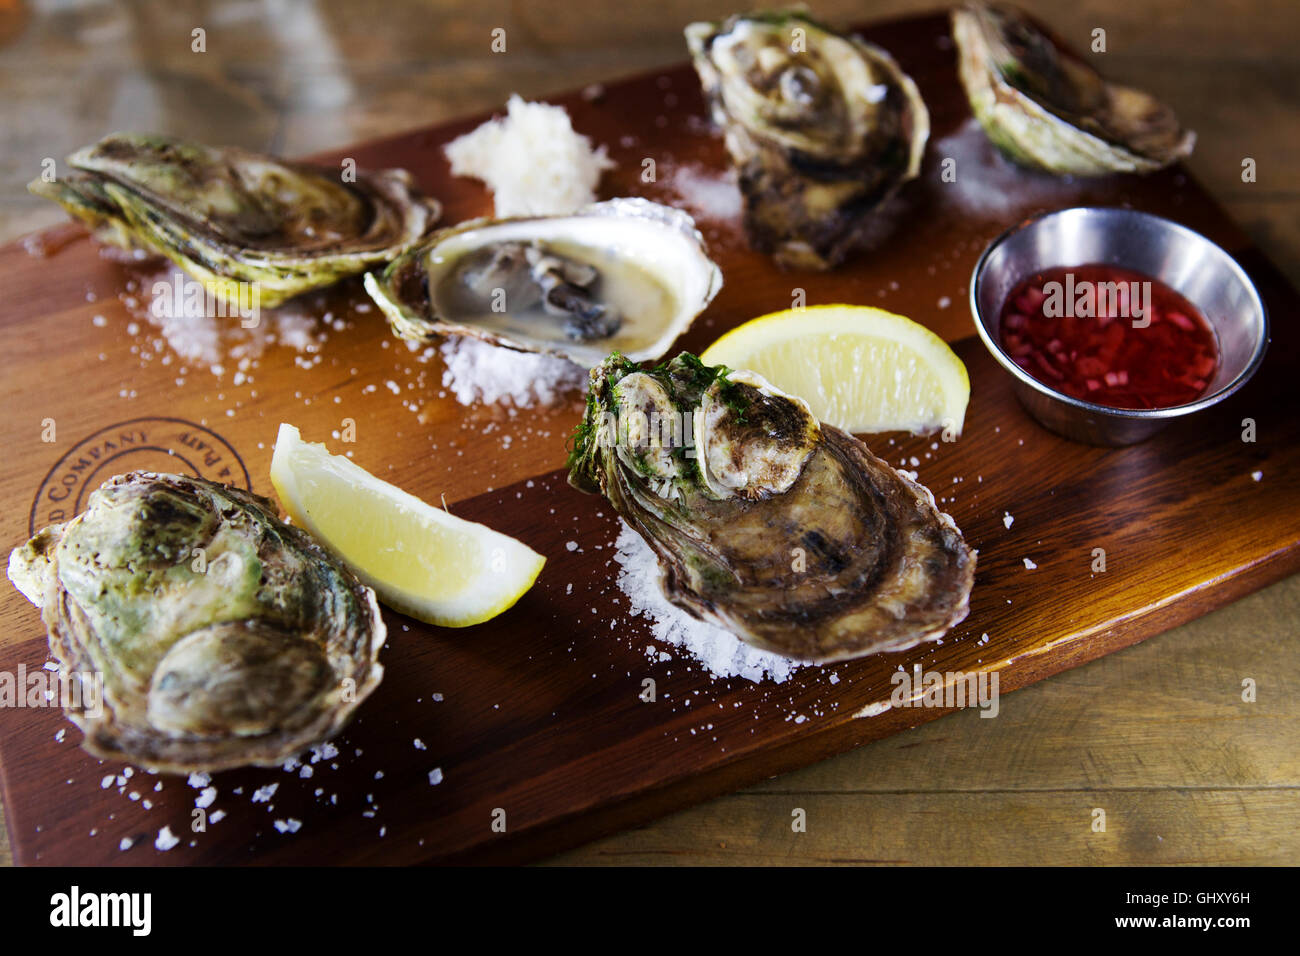 A board of Price Edward Island oysters served at St John's in Newfoundland and Labrador, Canada. Stock Photo